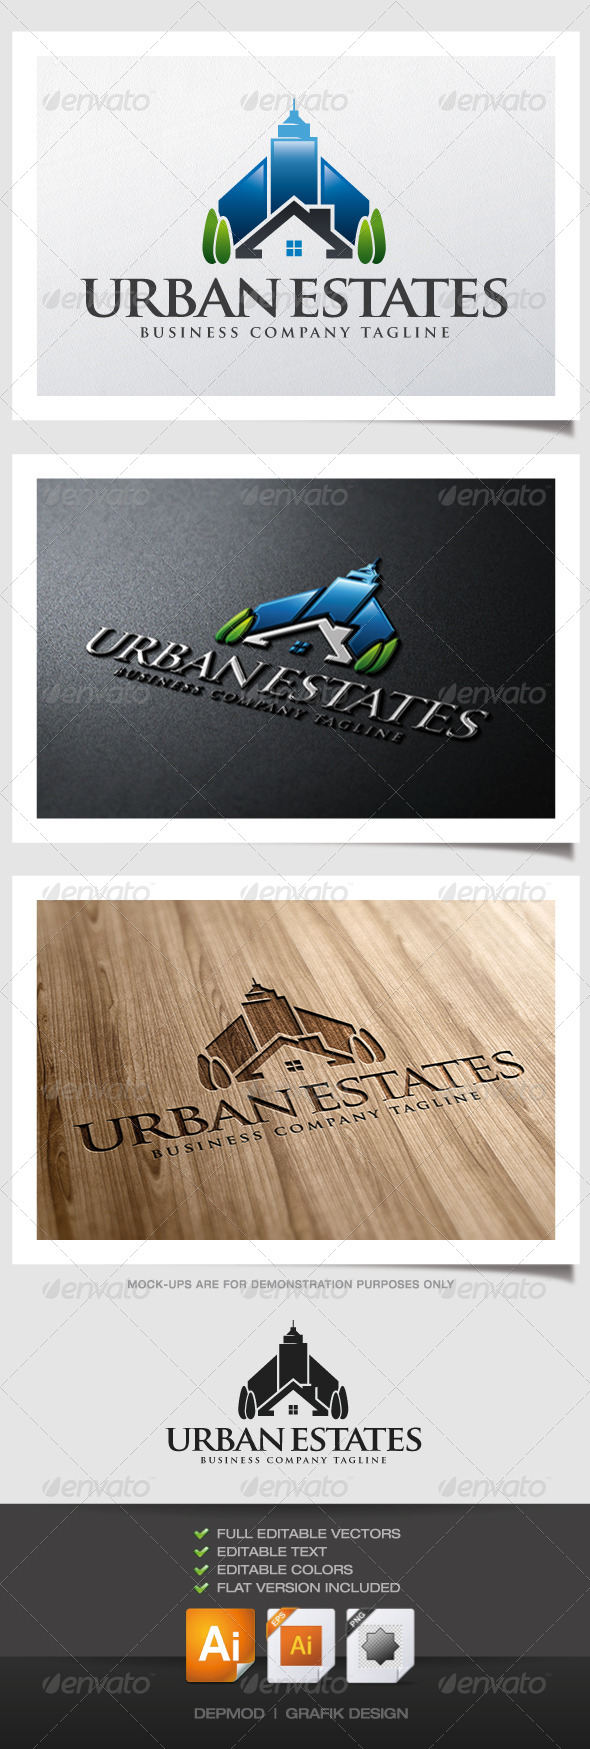 GraphicRiver Urban Estates Logo 4837544